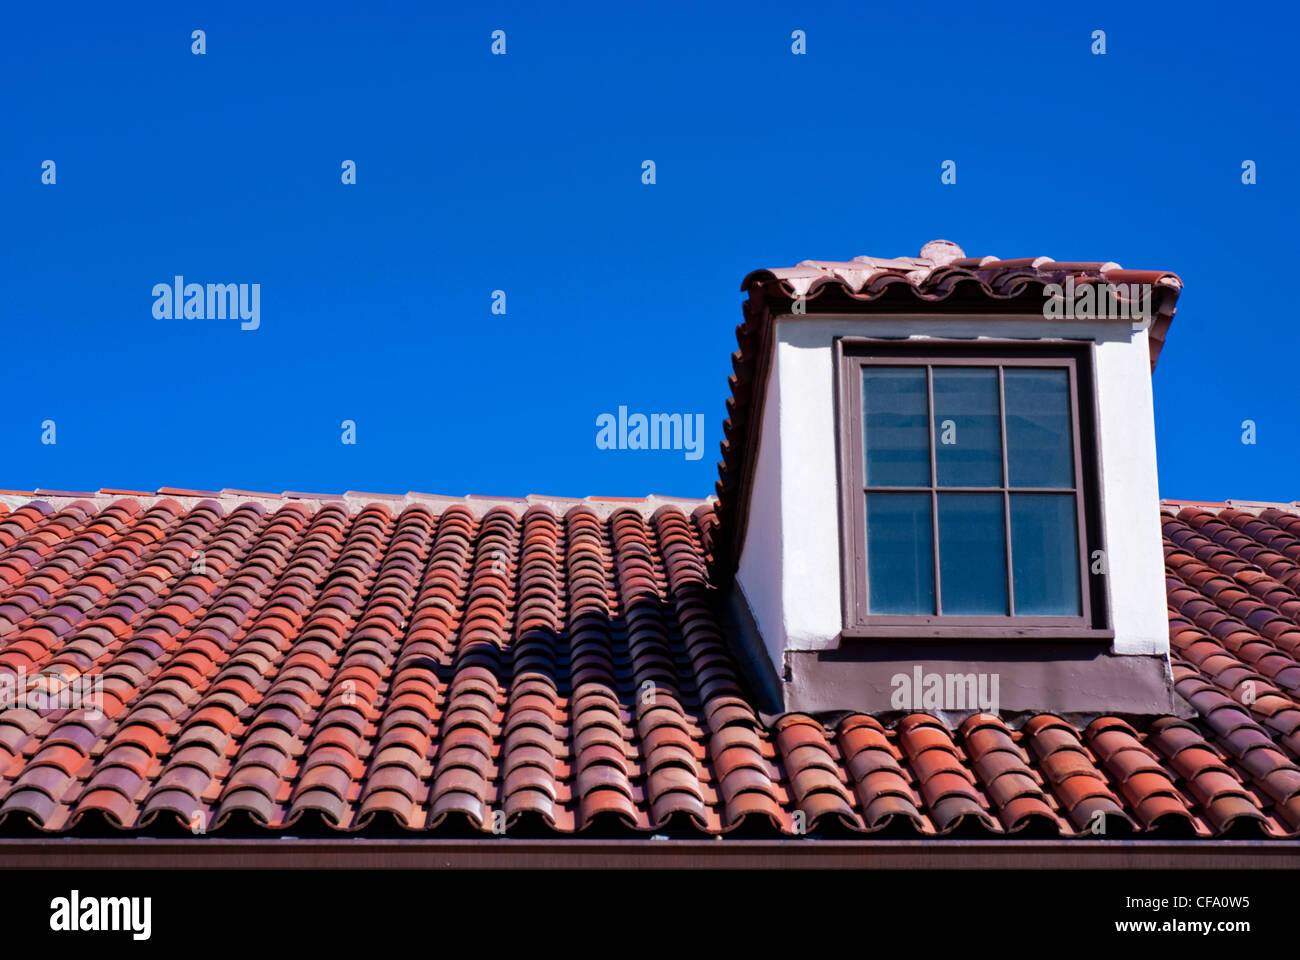 Ceramic tile roof and deep blue sky stock photo royalty free ceramic tile roof and deep blue sky dailygadgetfo Choice Image